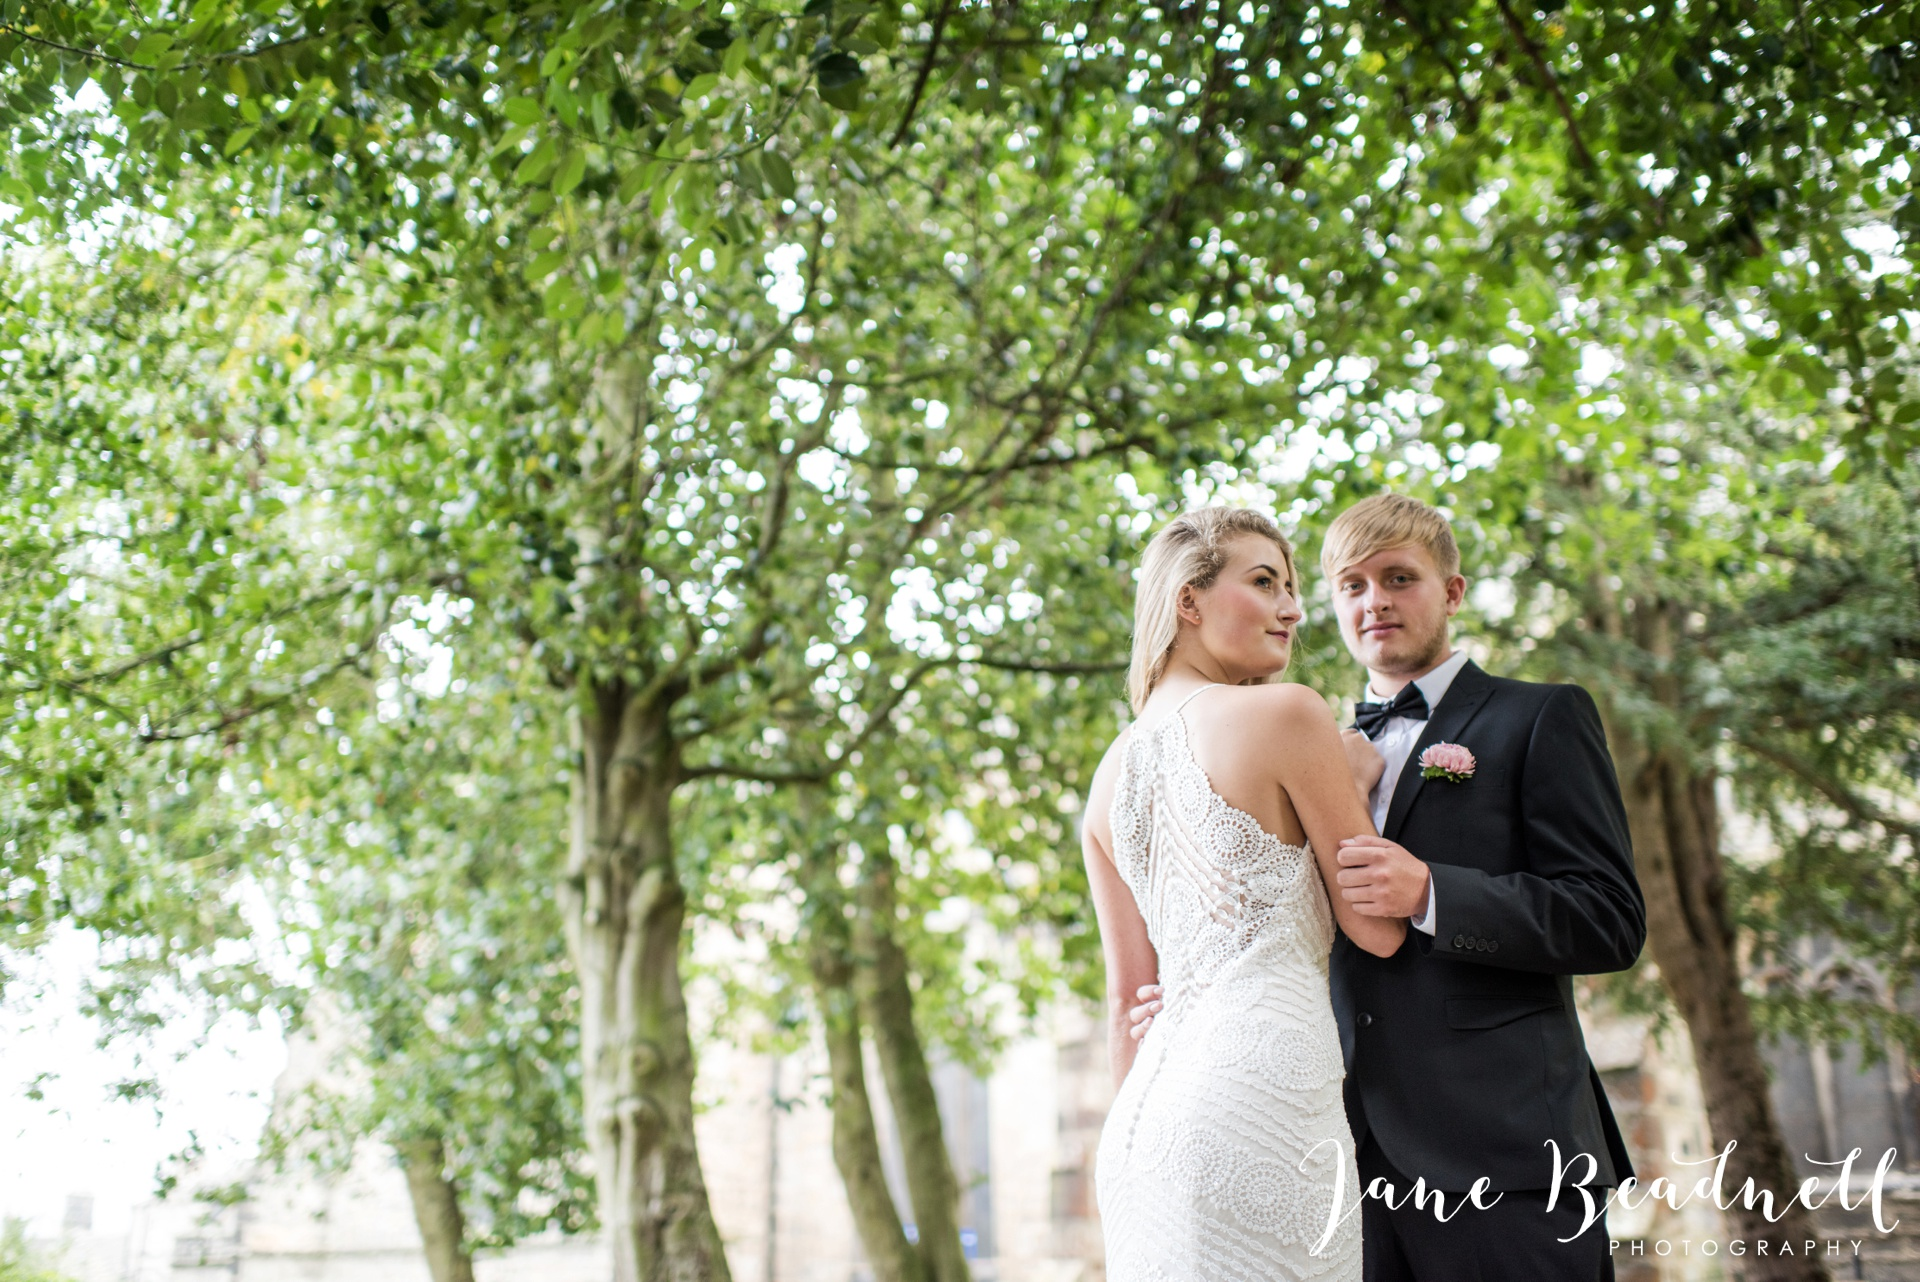 yorkshire-fine-art-wedding-photographer-jane-beadnell-photography-with-leafy-couture-wedding-flowers_0008